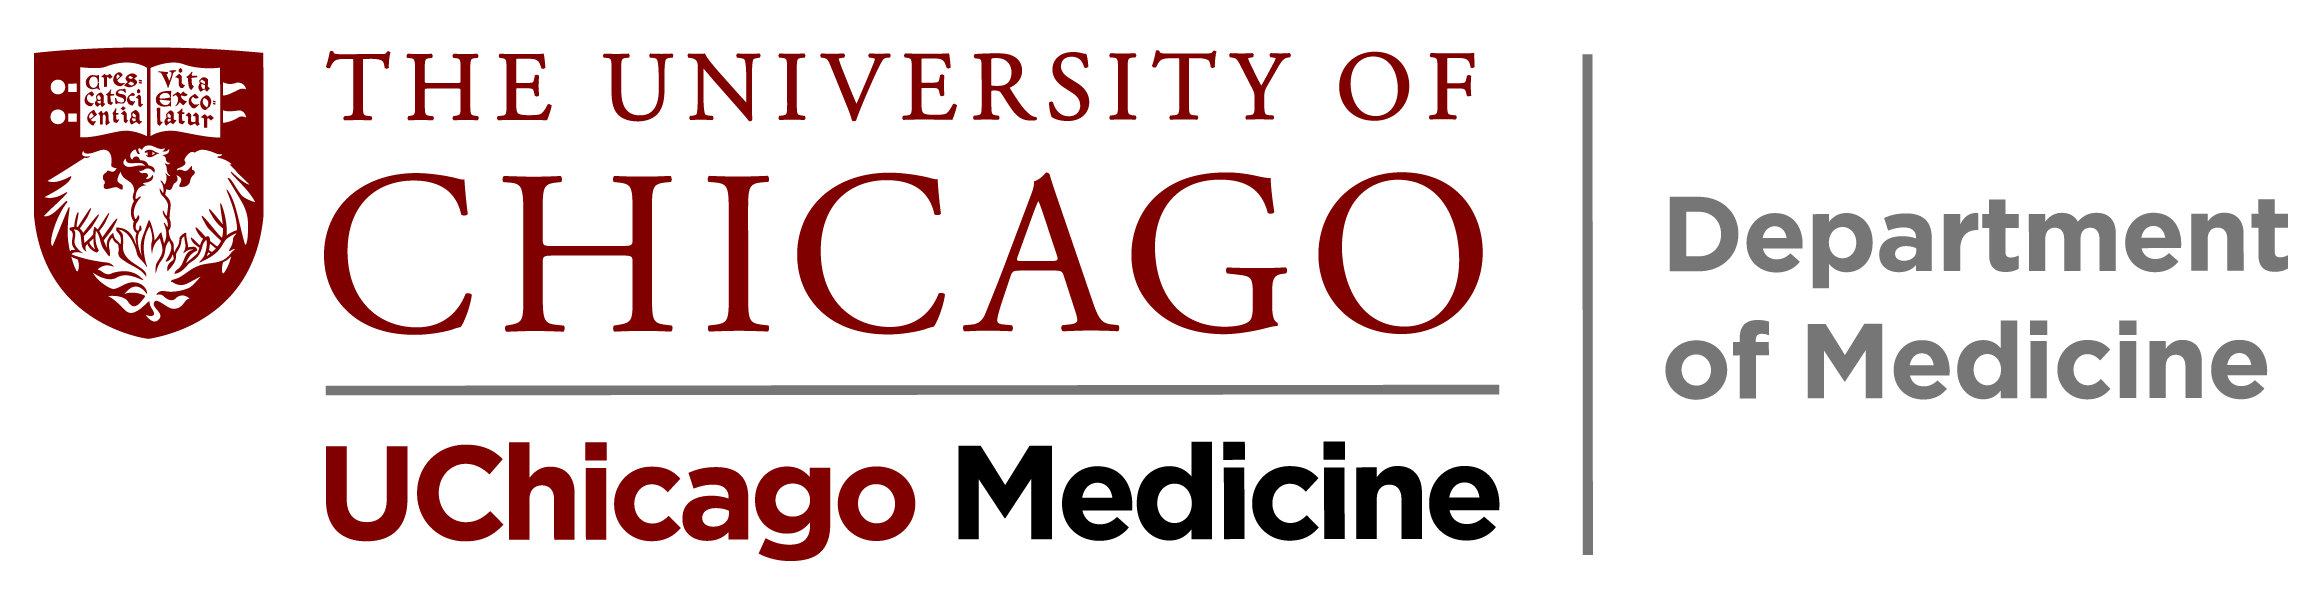 ACGME Sleep Fellowship – University of Chicago – Department